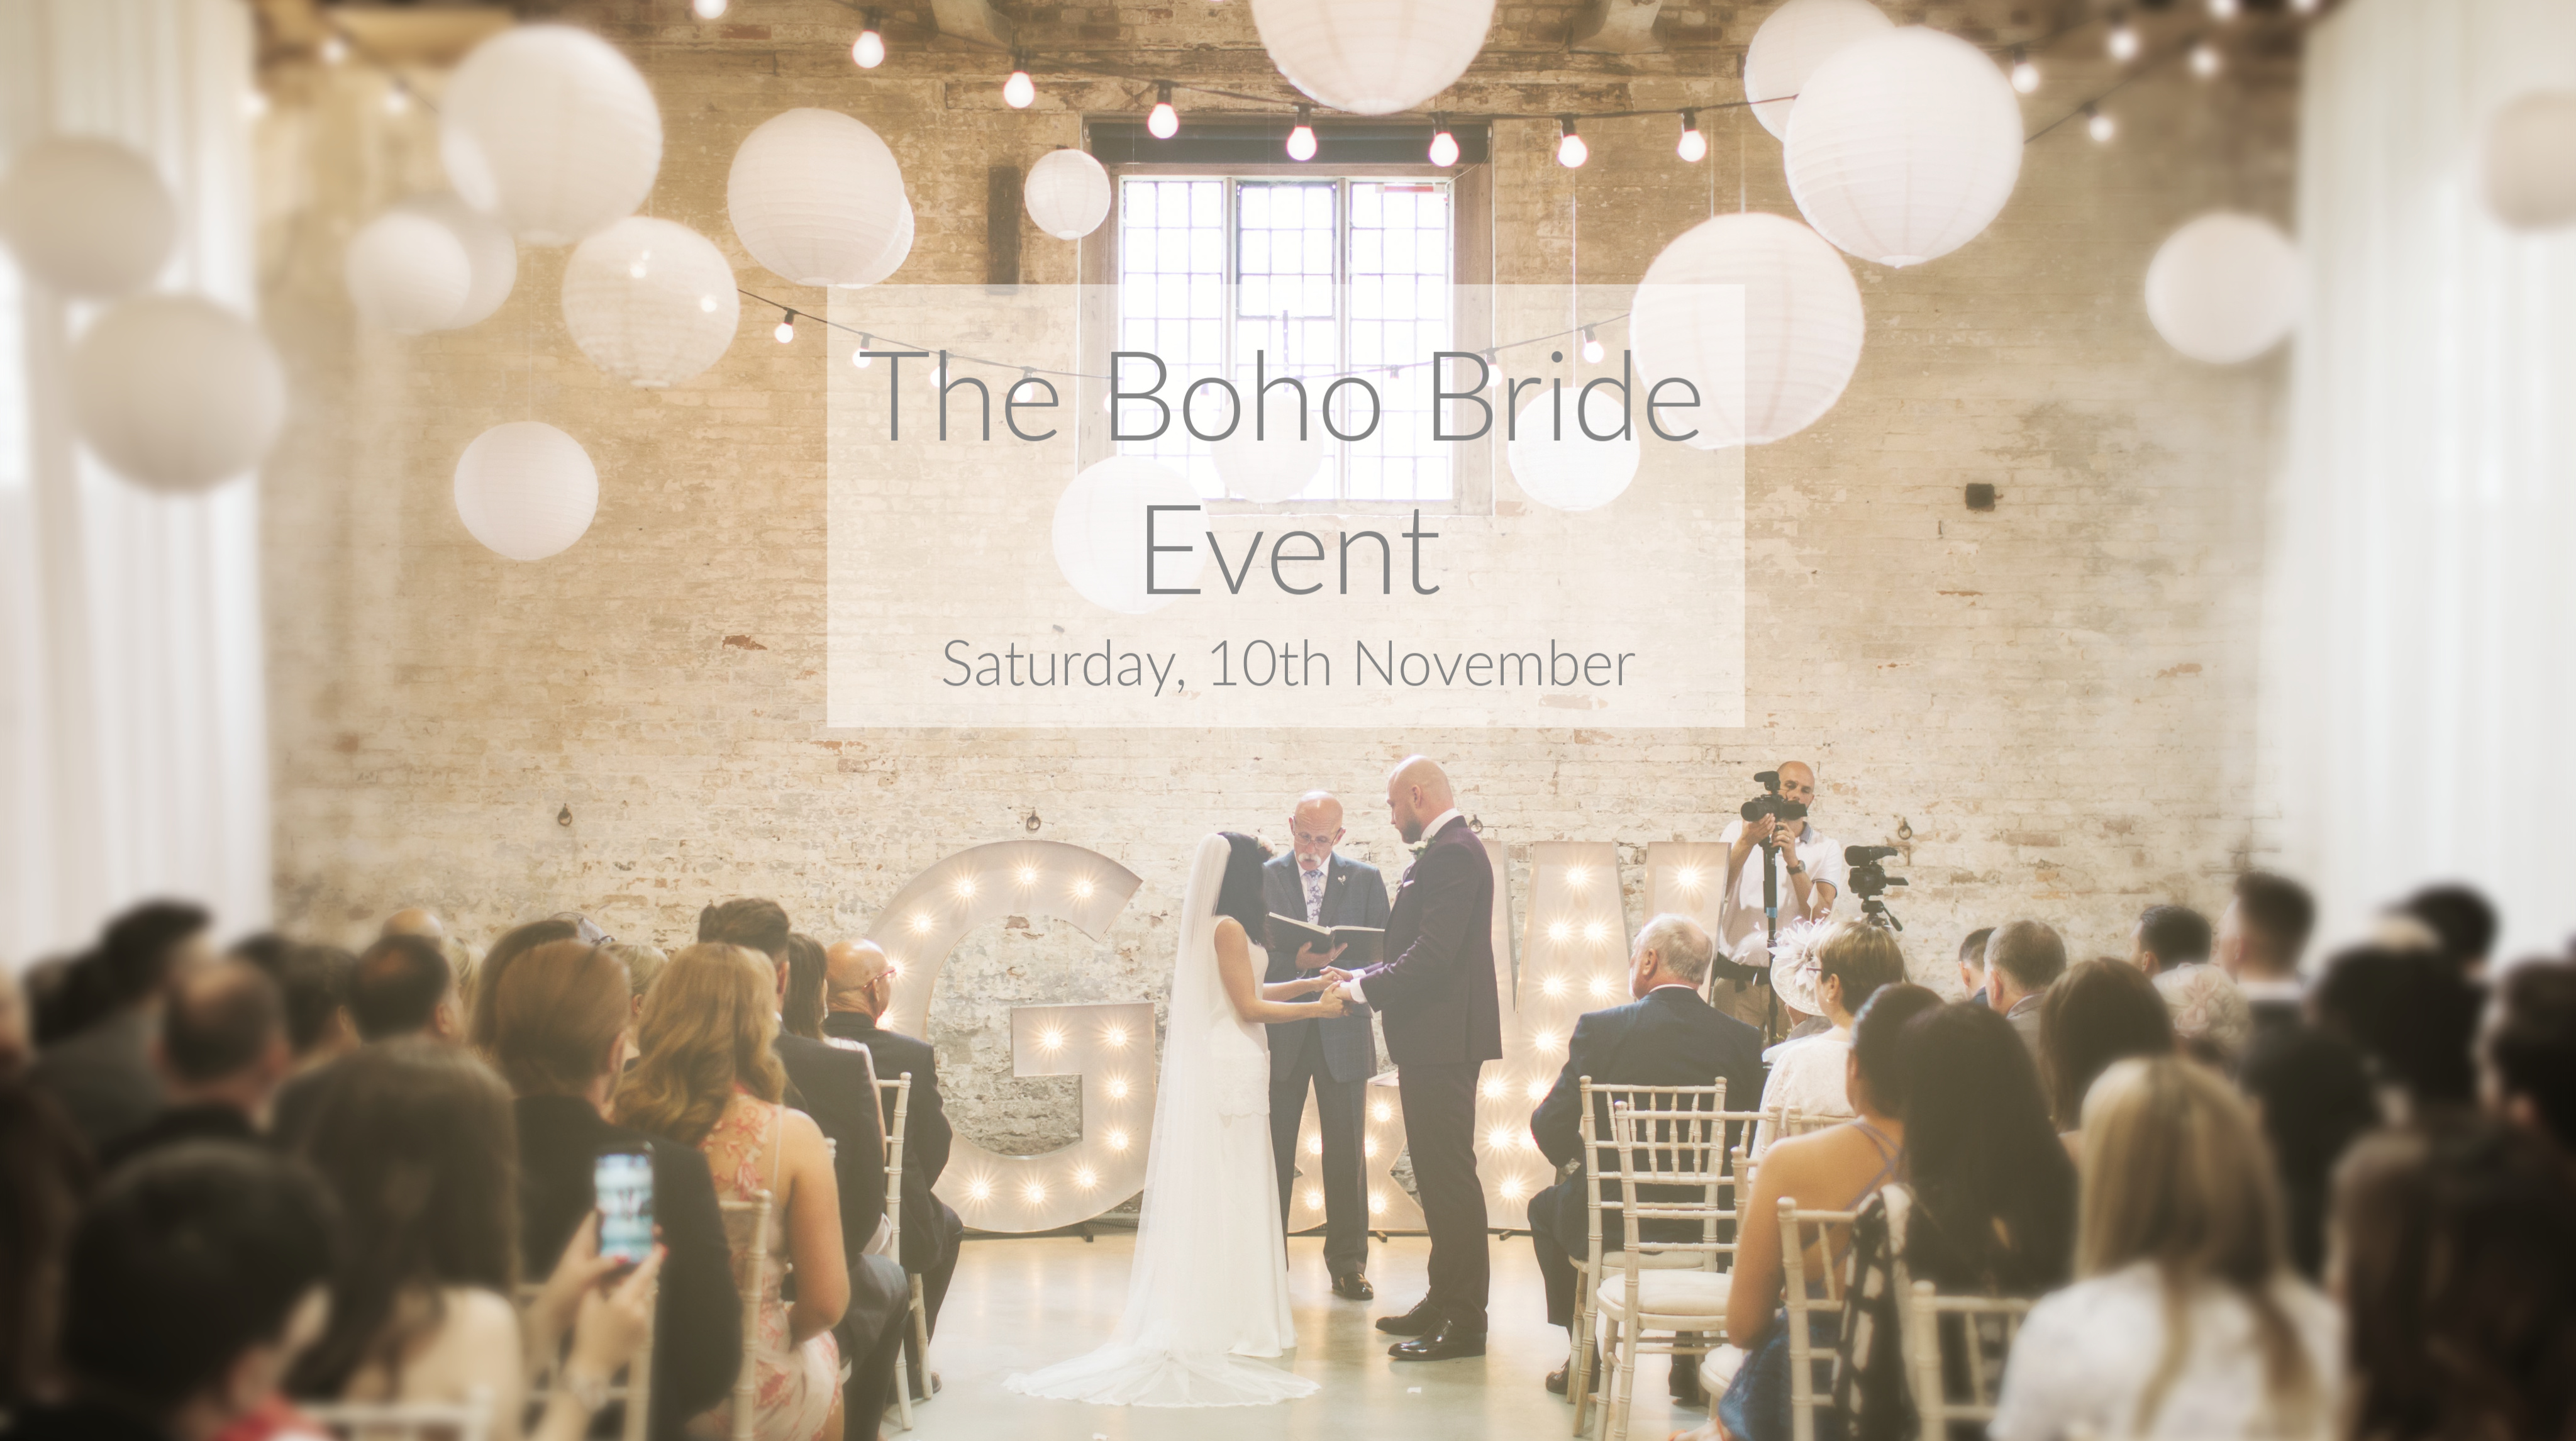 Boho Bride event at Cicily Bridal